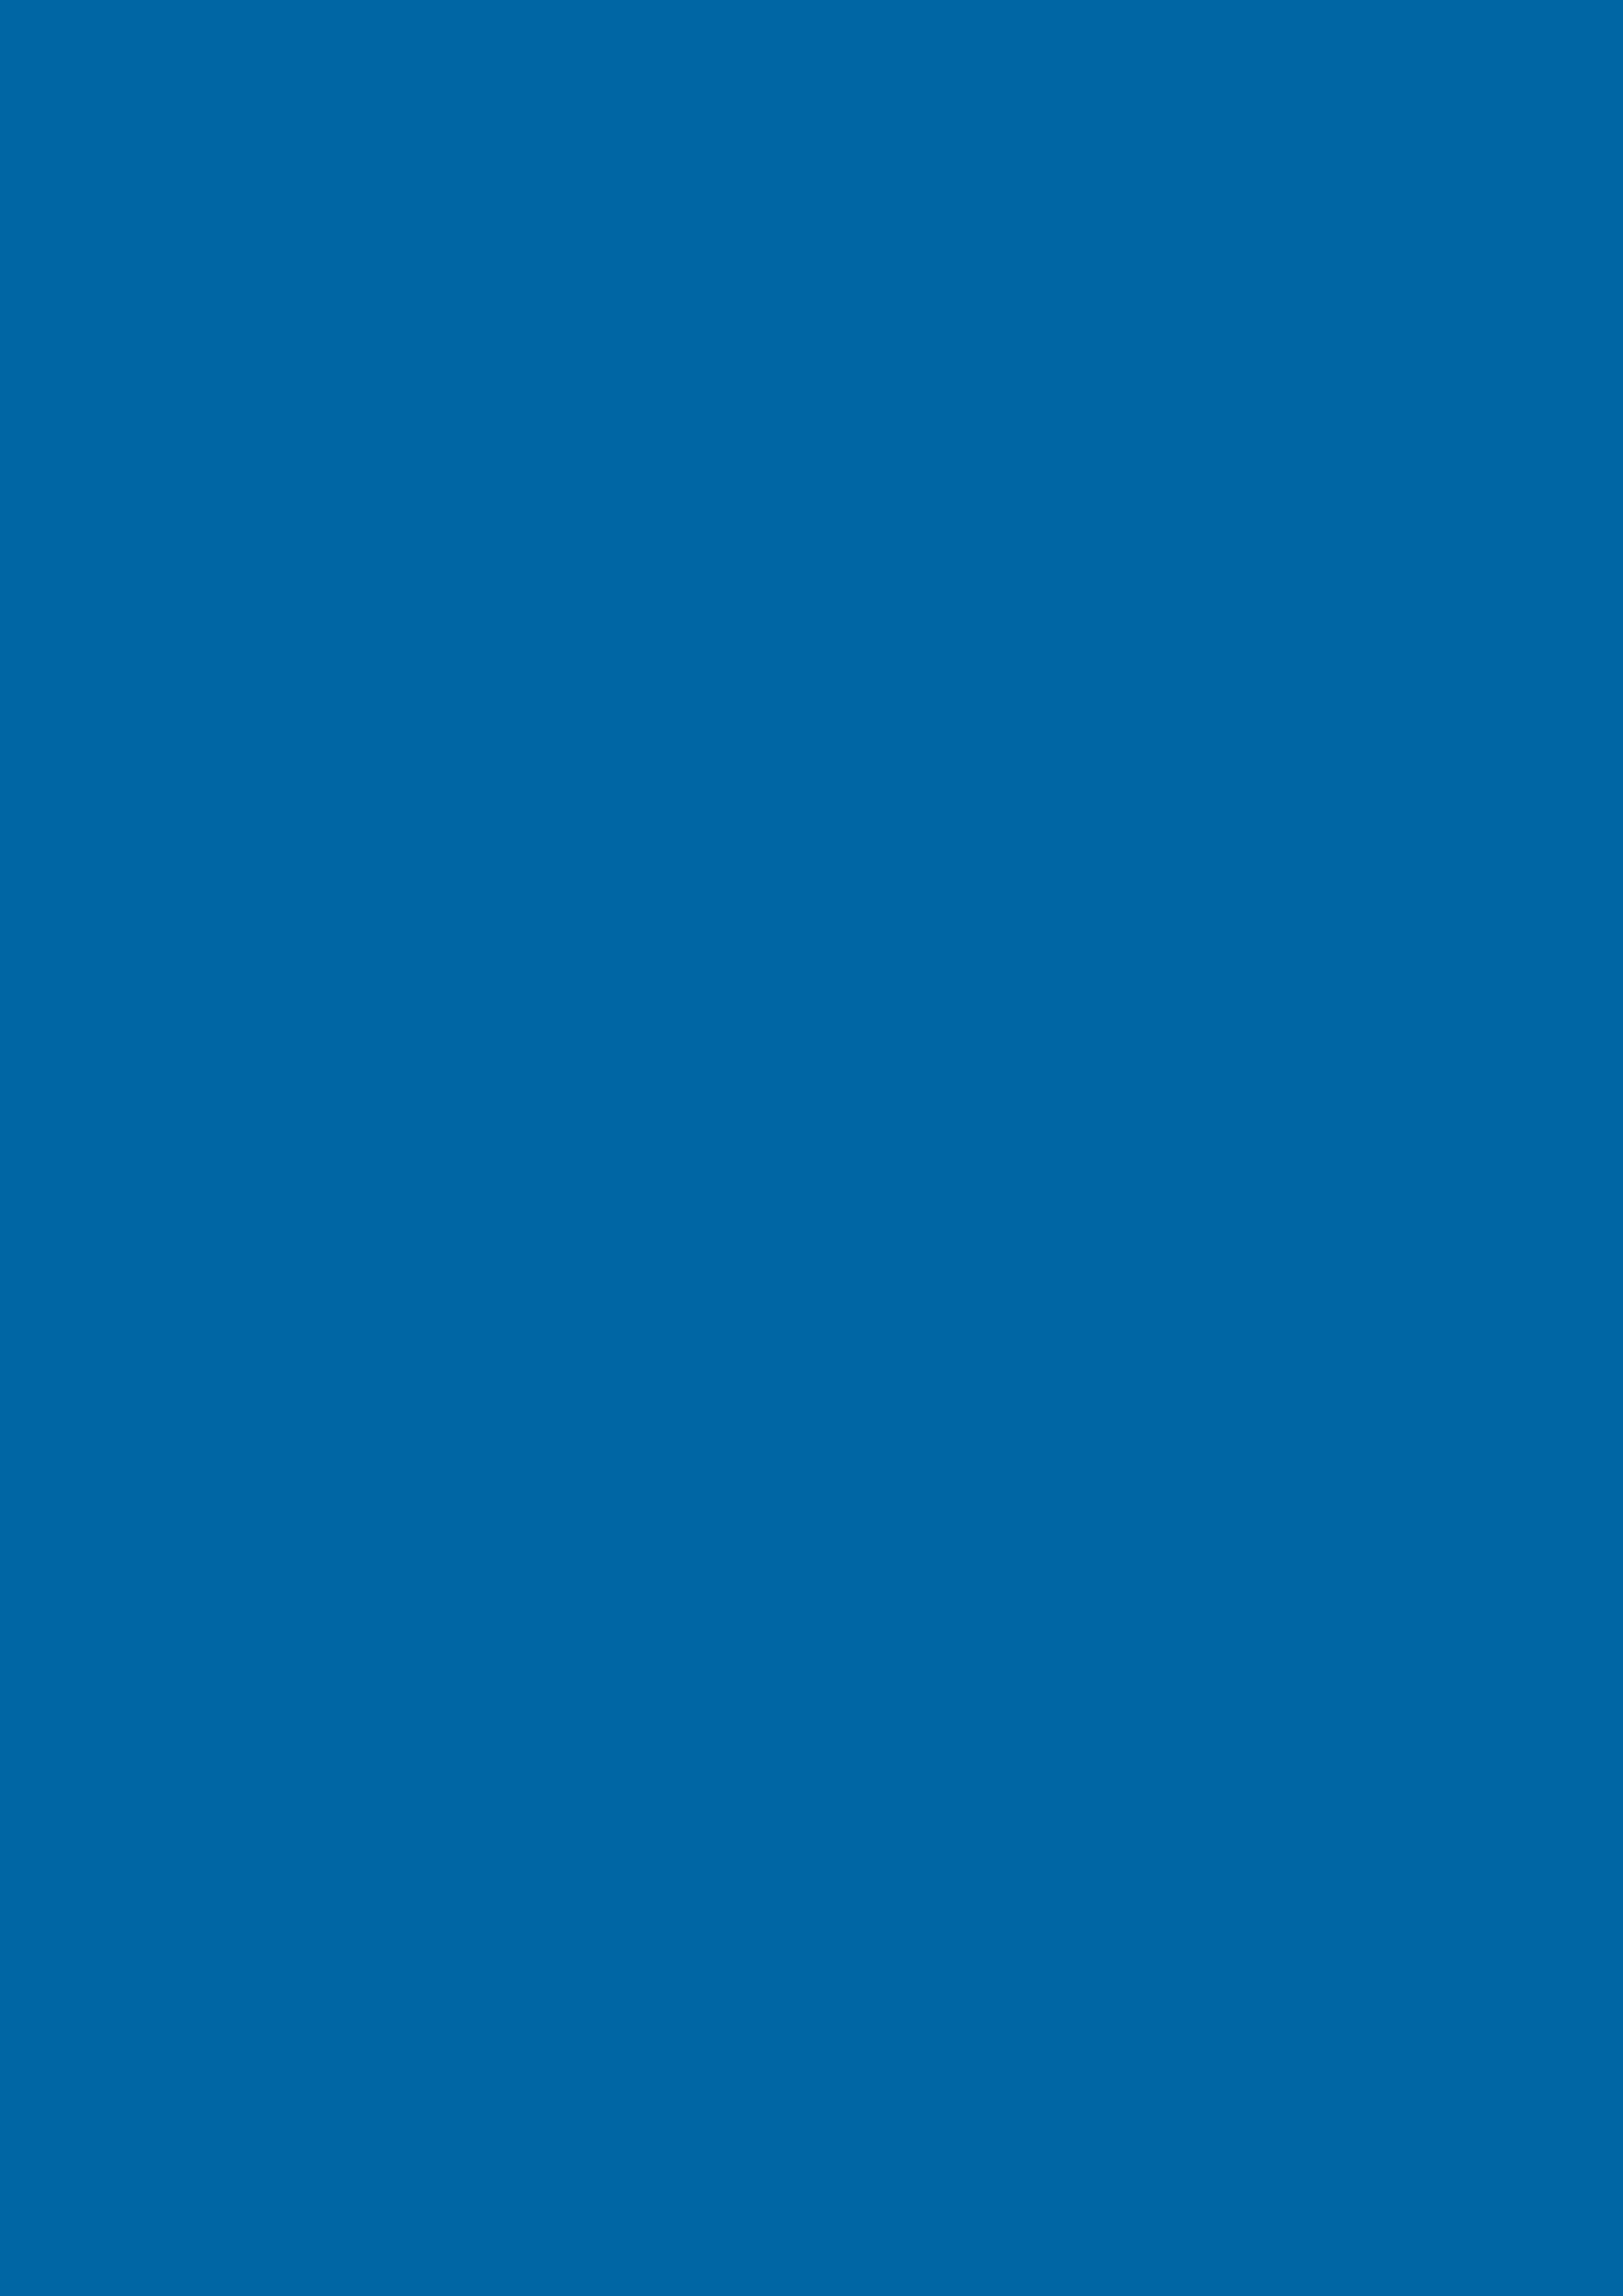 2480x3508 Sapphire Blue Solid Color Background